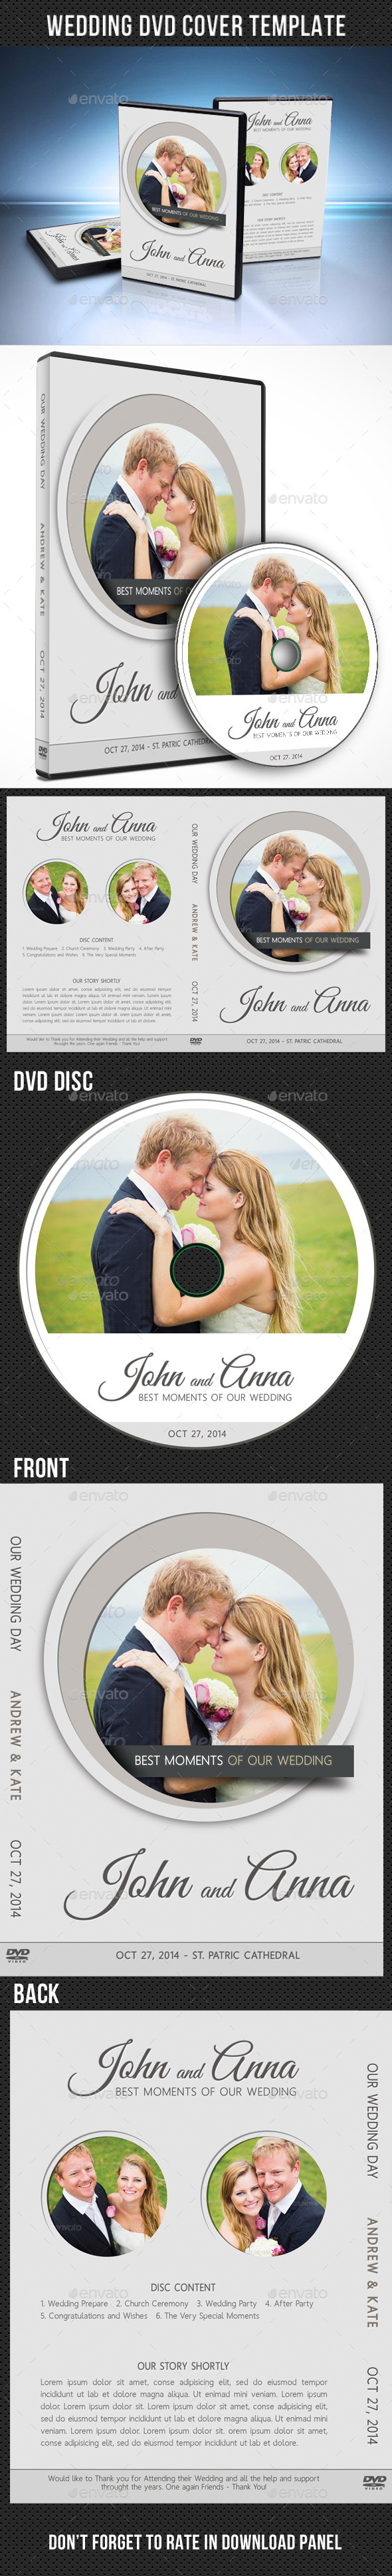 GraphicRiver Wedding DVD Cover Template 11 9135030